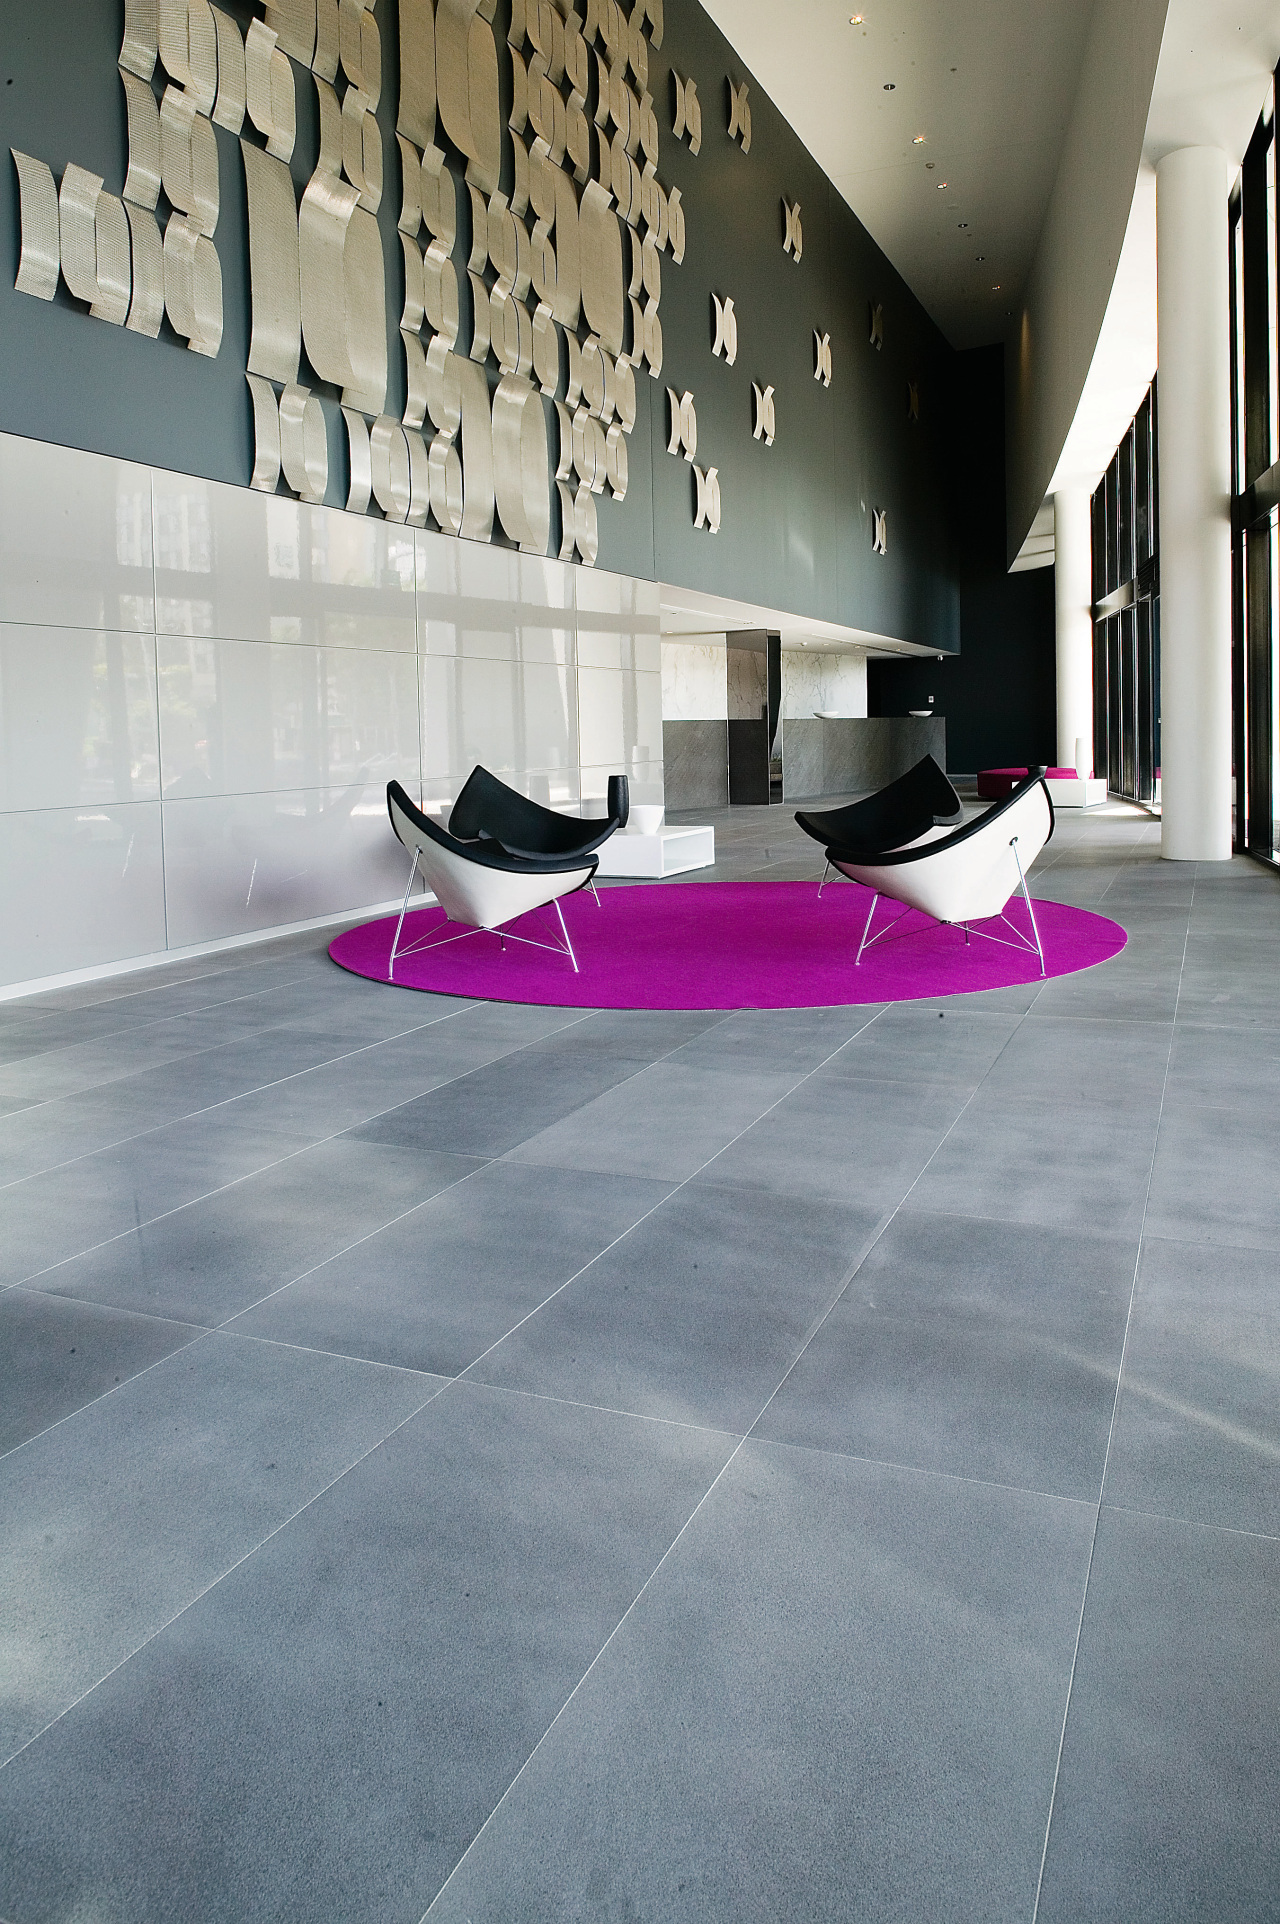 A view of the honed black granite tiles architecture, floor, flooring, interior design, laminate flooring, product design, table, tile, wall, gray